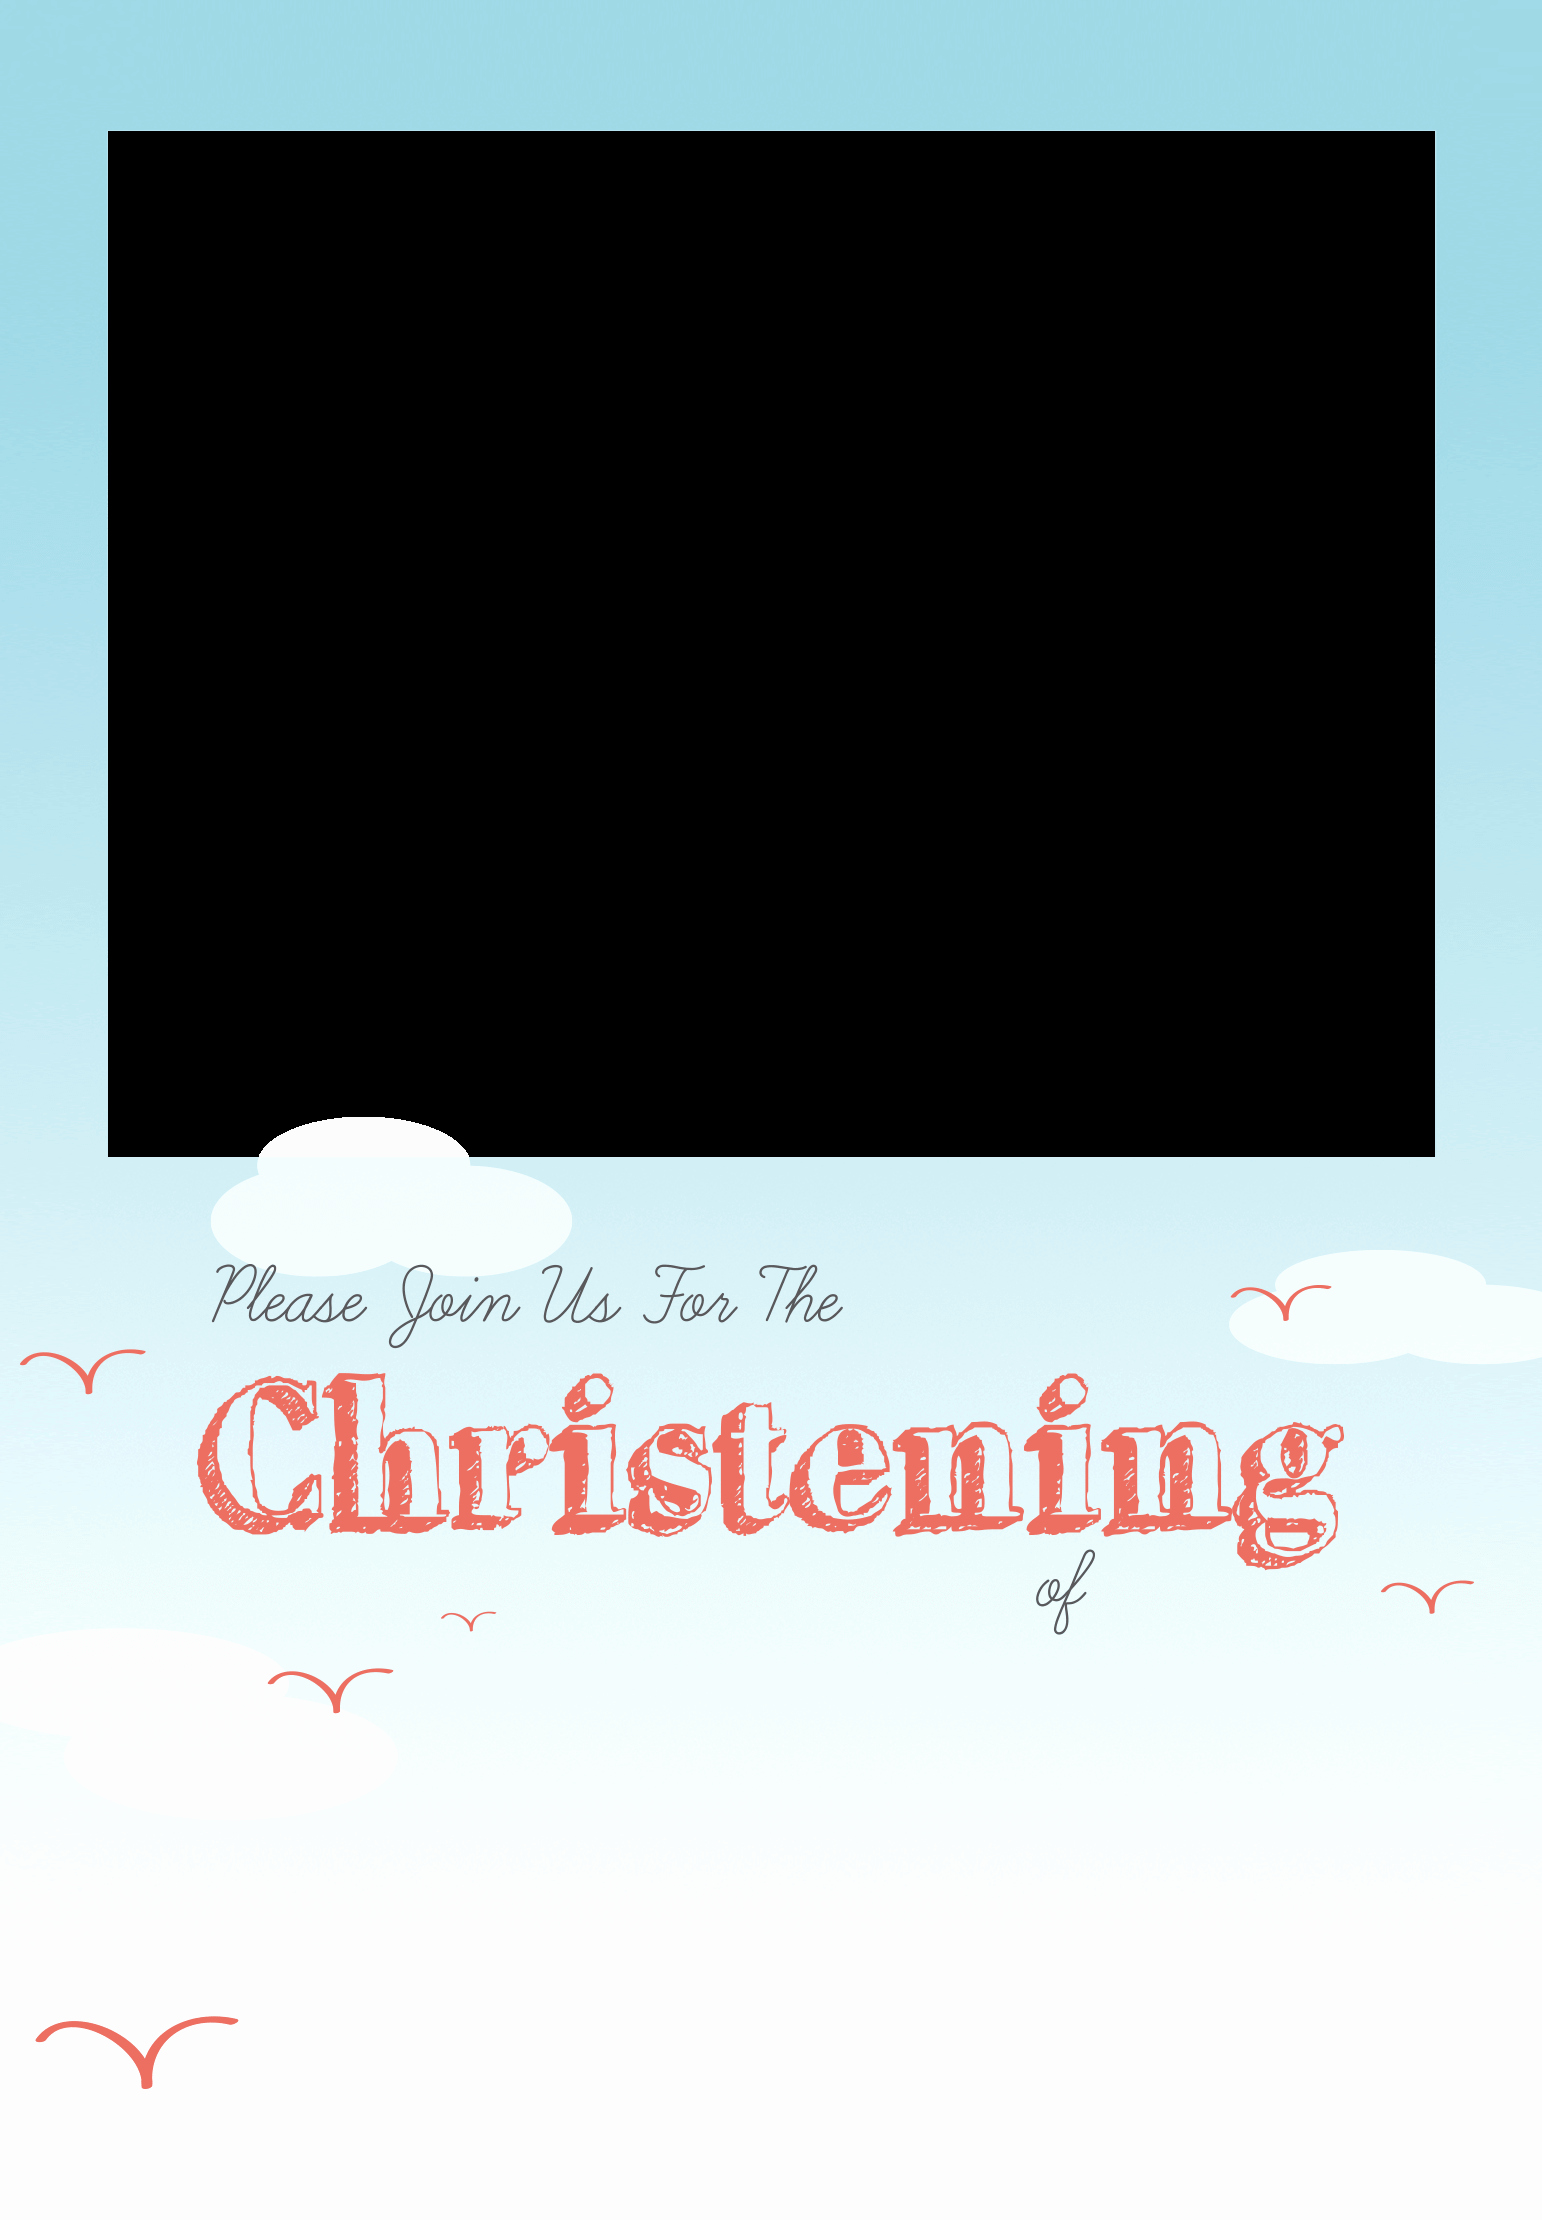 Free Christening Invitation Templates Unique All Smiles Free Printable Baptism & Christening